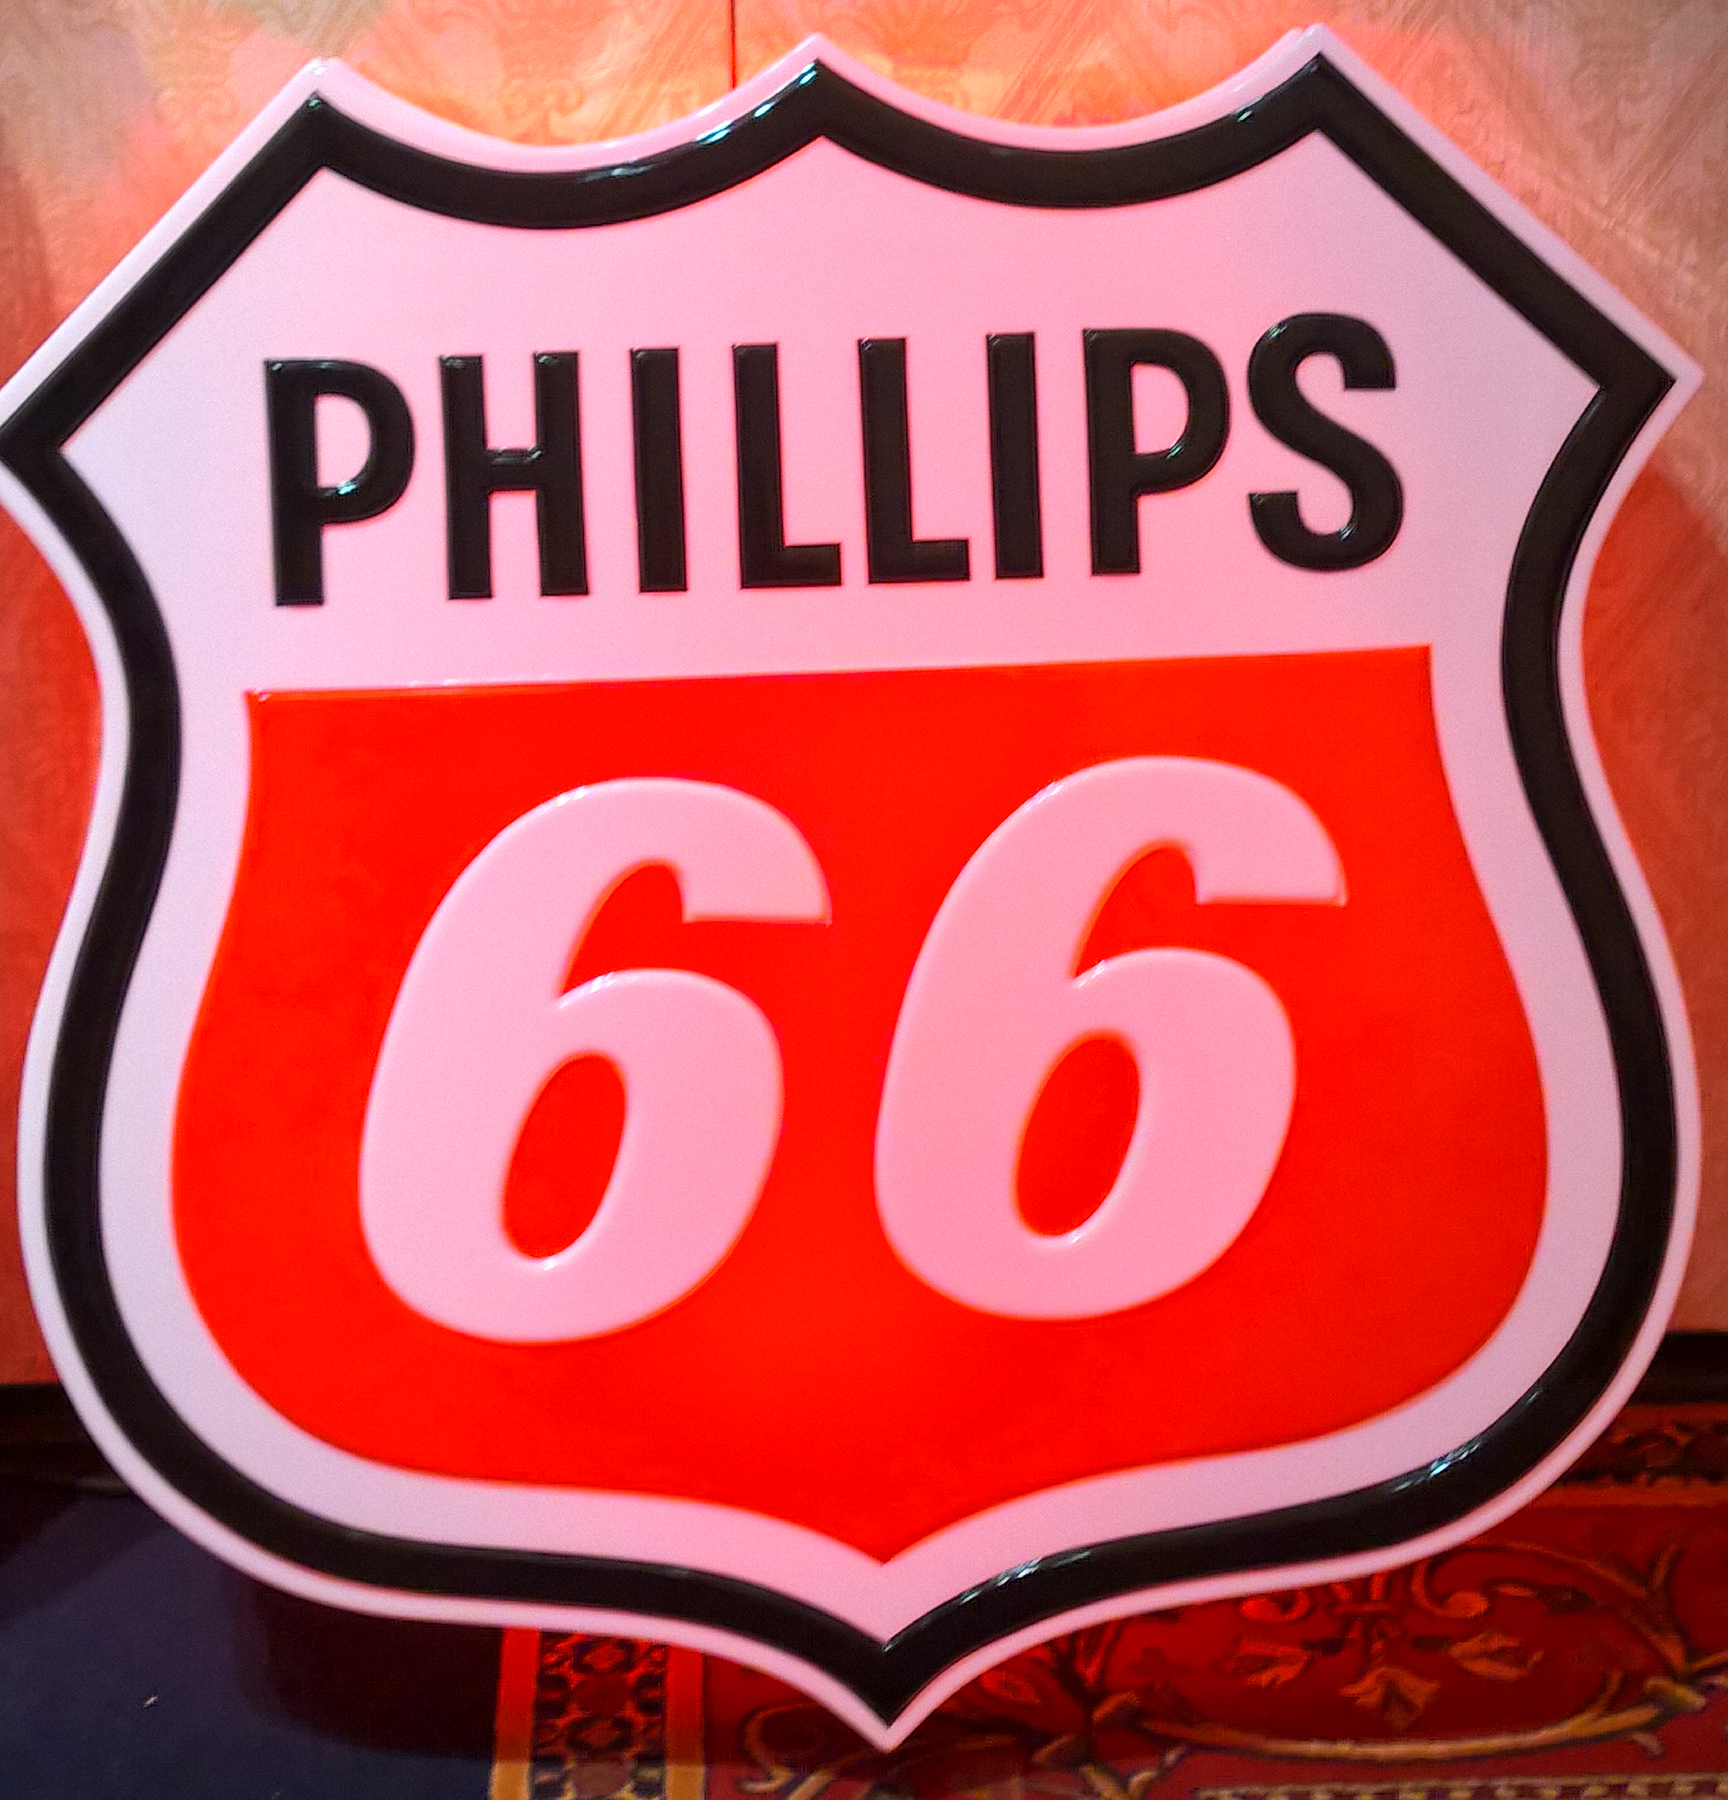 New Phillips 66 sign for our retailers